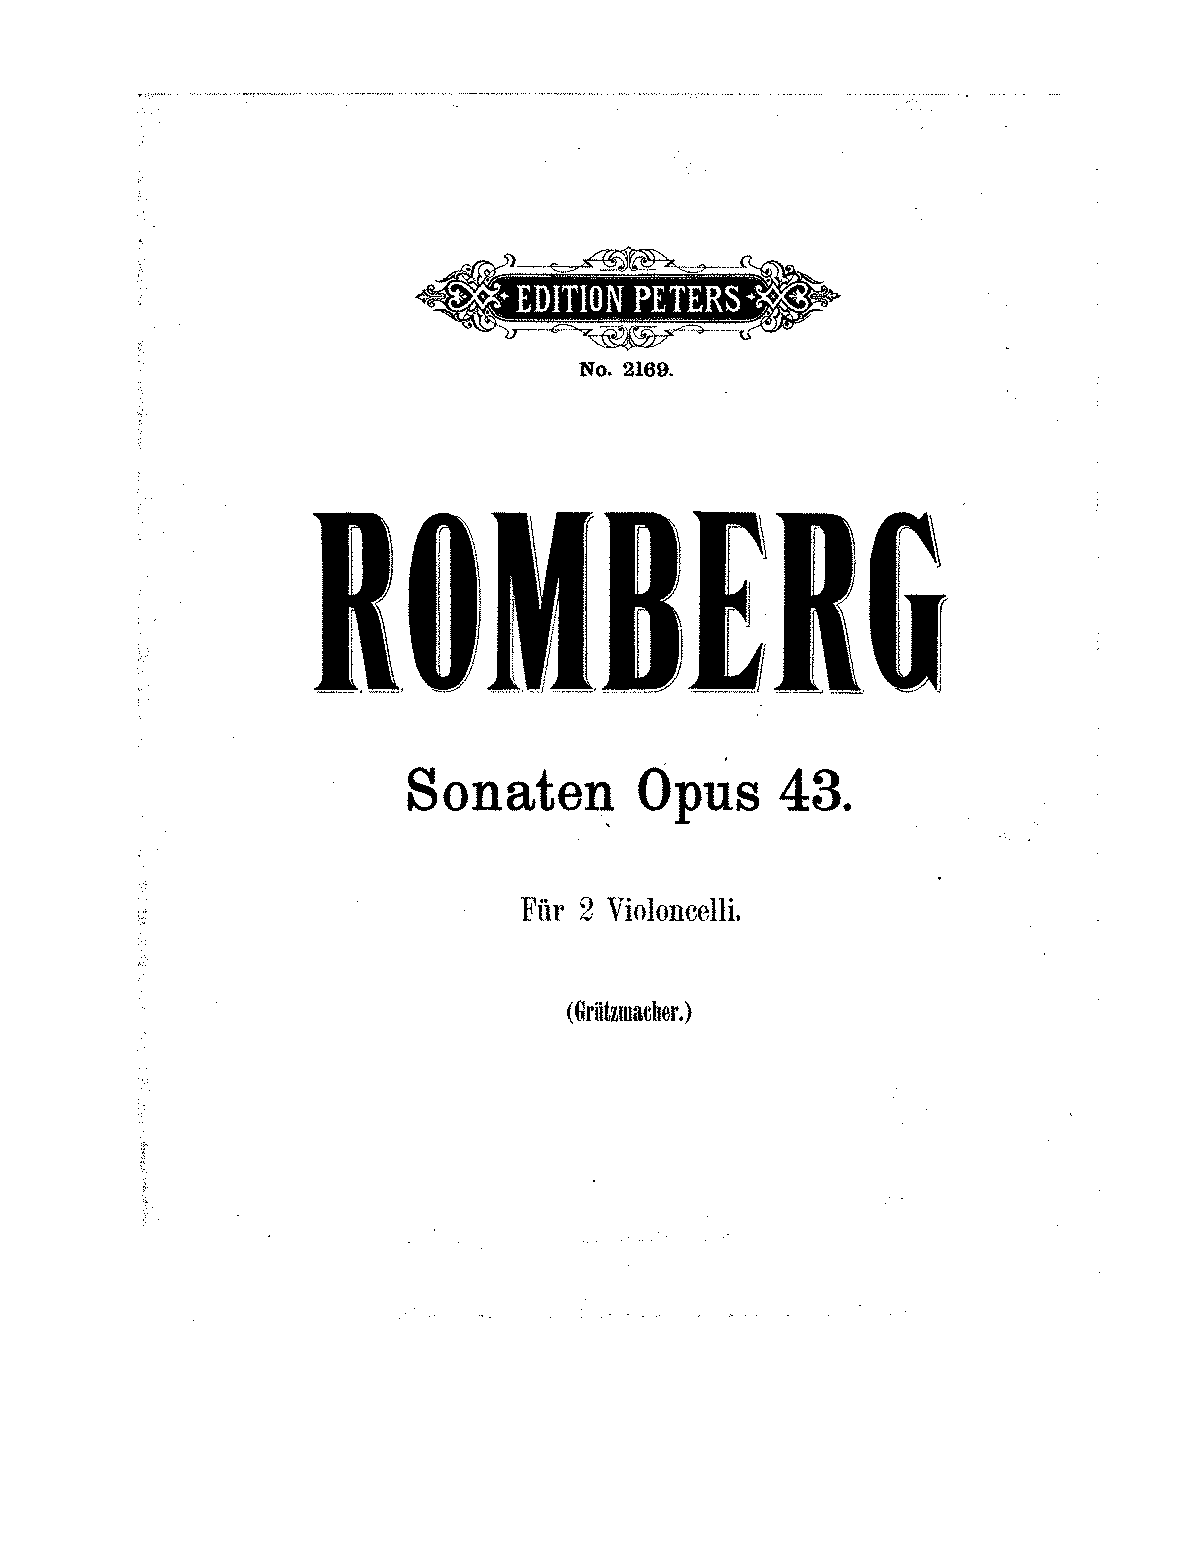 PMLP57261-Romberg - Sonatas for 2 Cellos (Grutzmacher) Op43 cello1.pdf